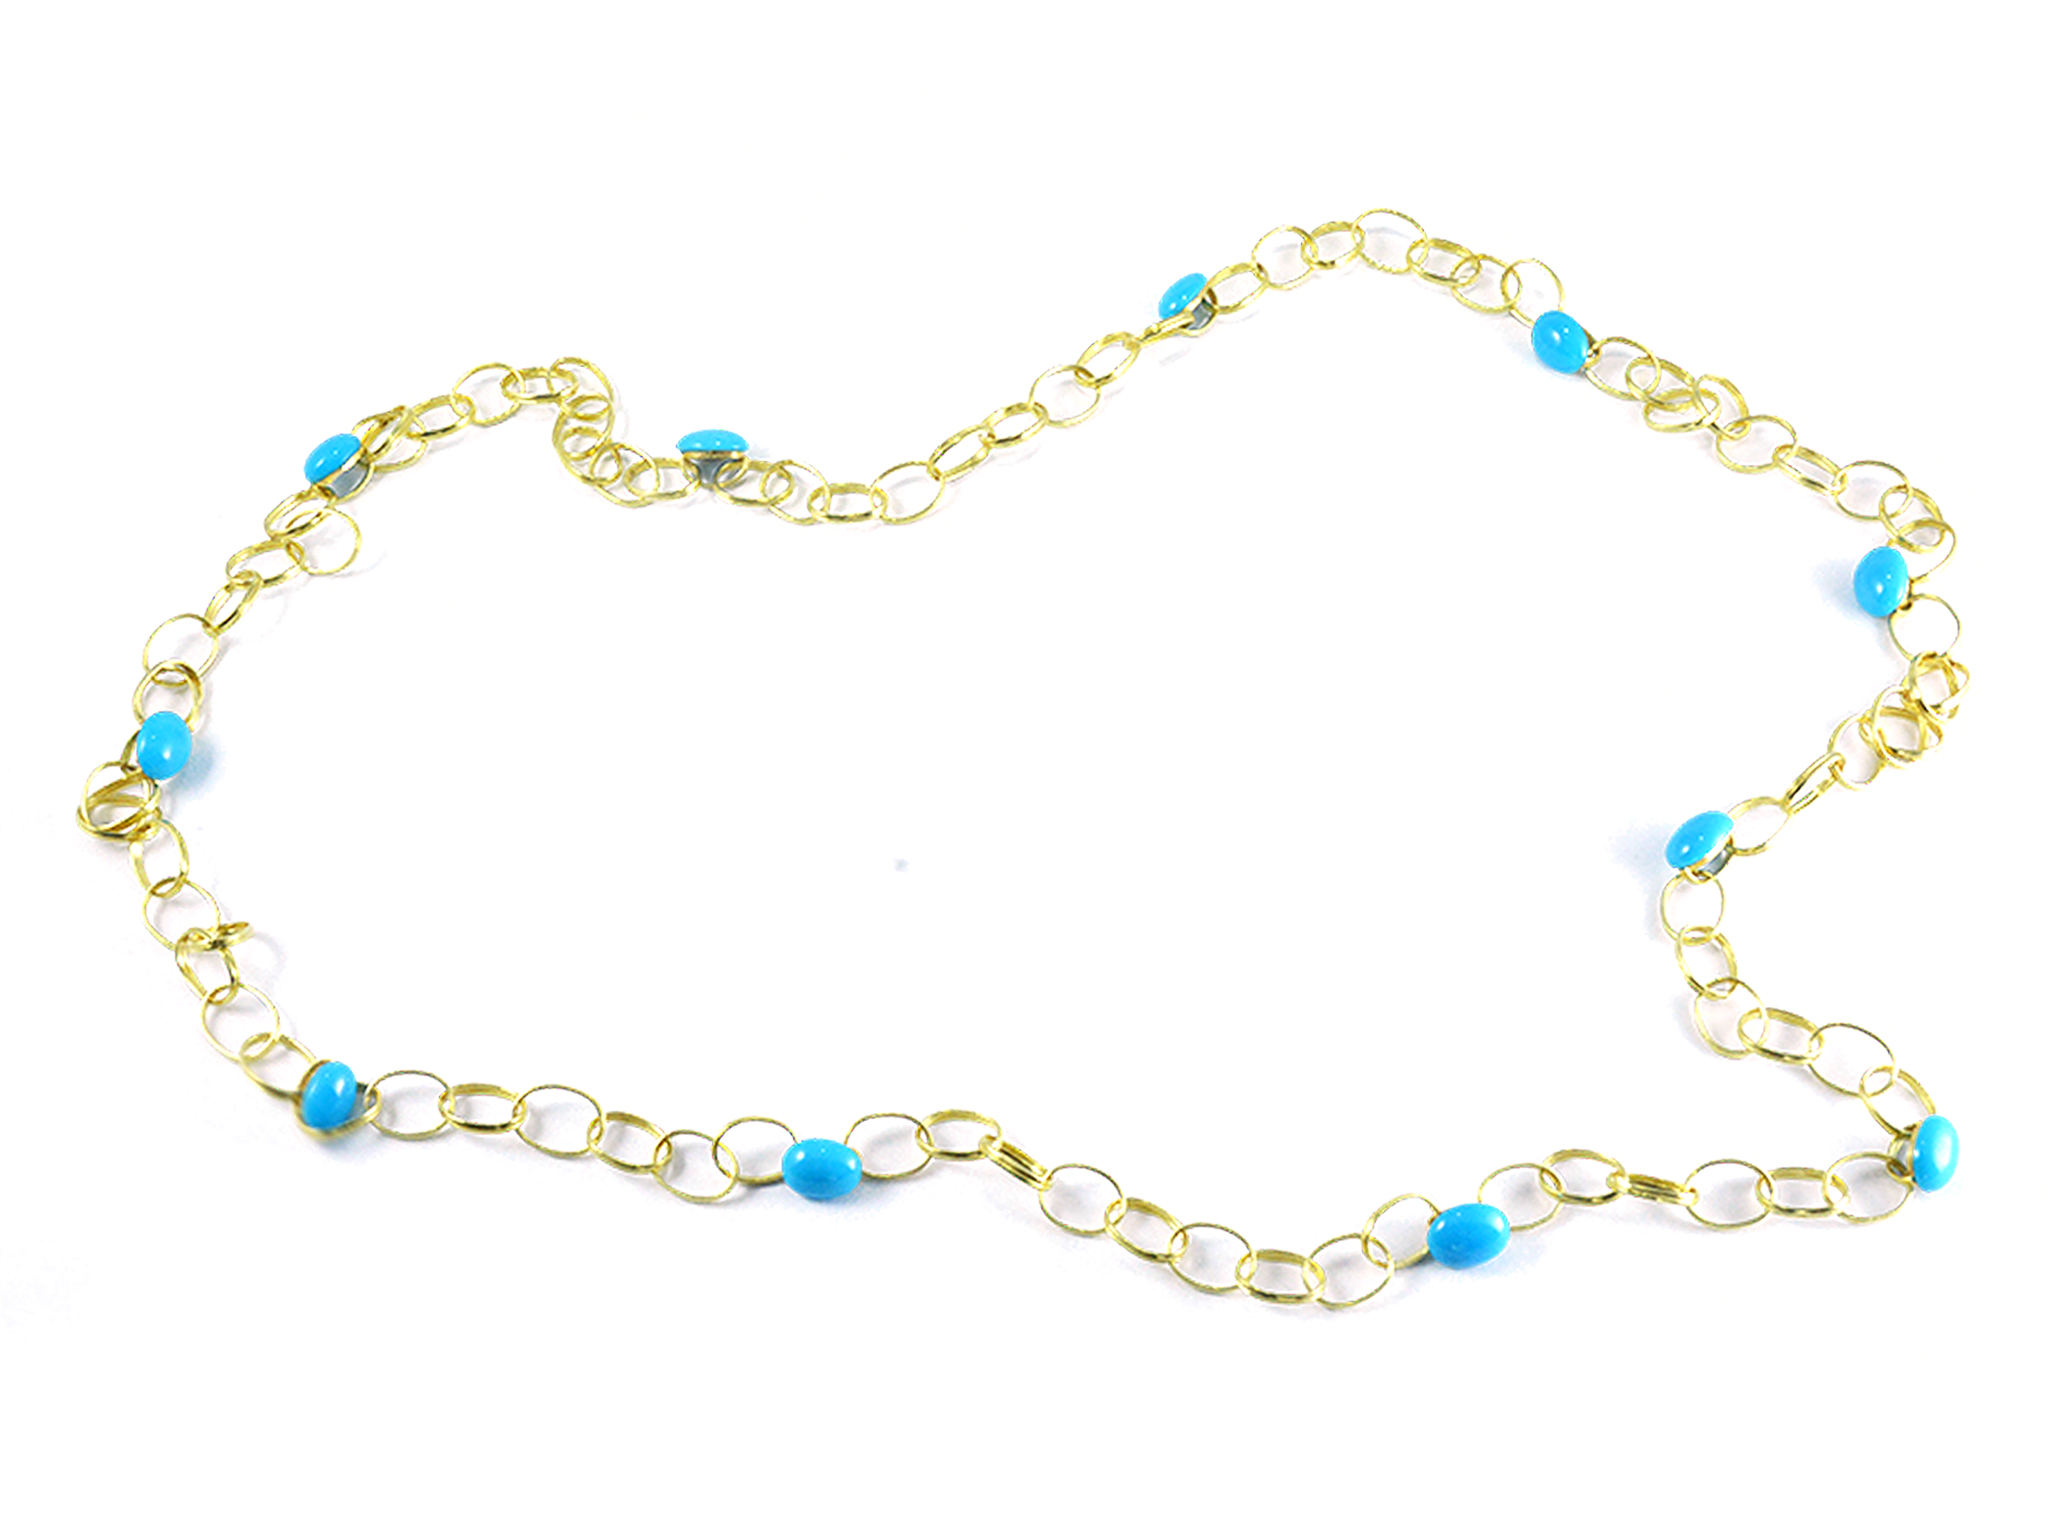 turquoise necklace com qvc spiderweb blossom page american squash west product